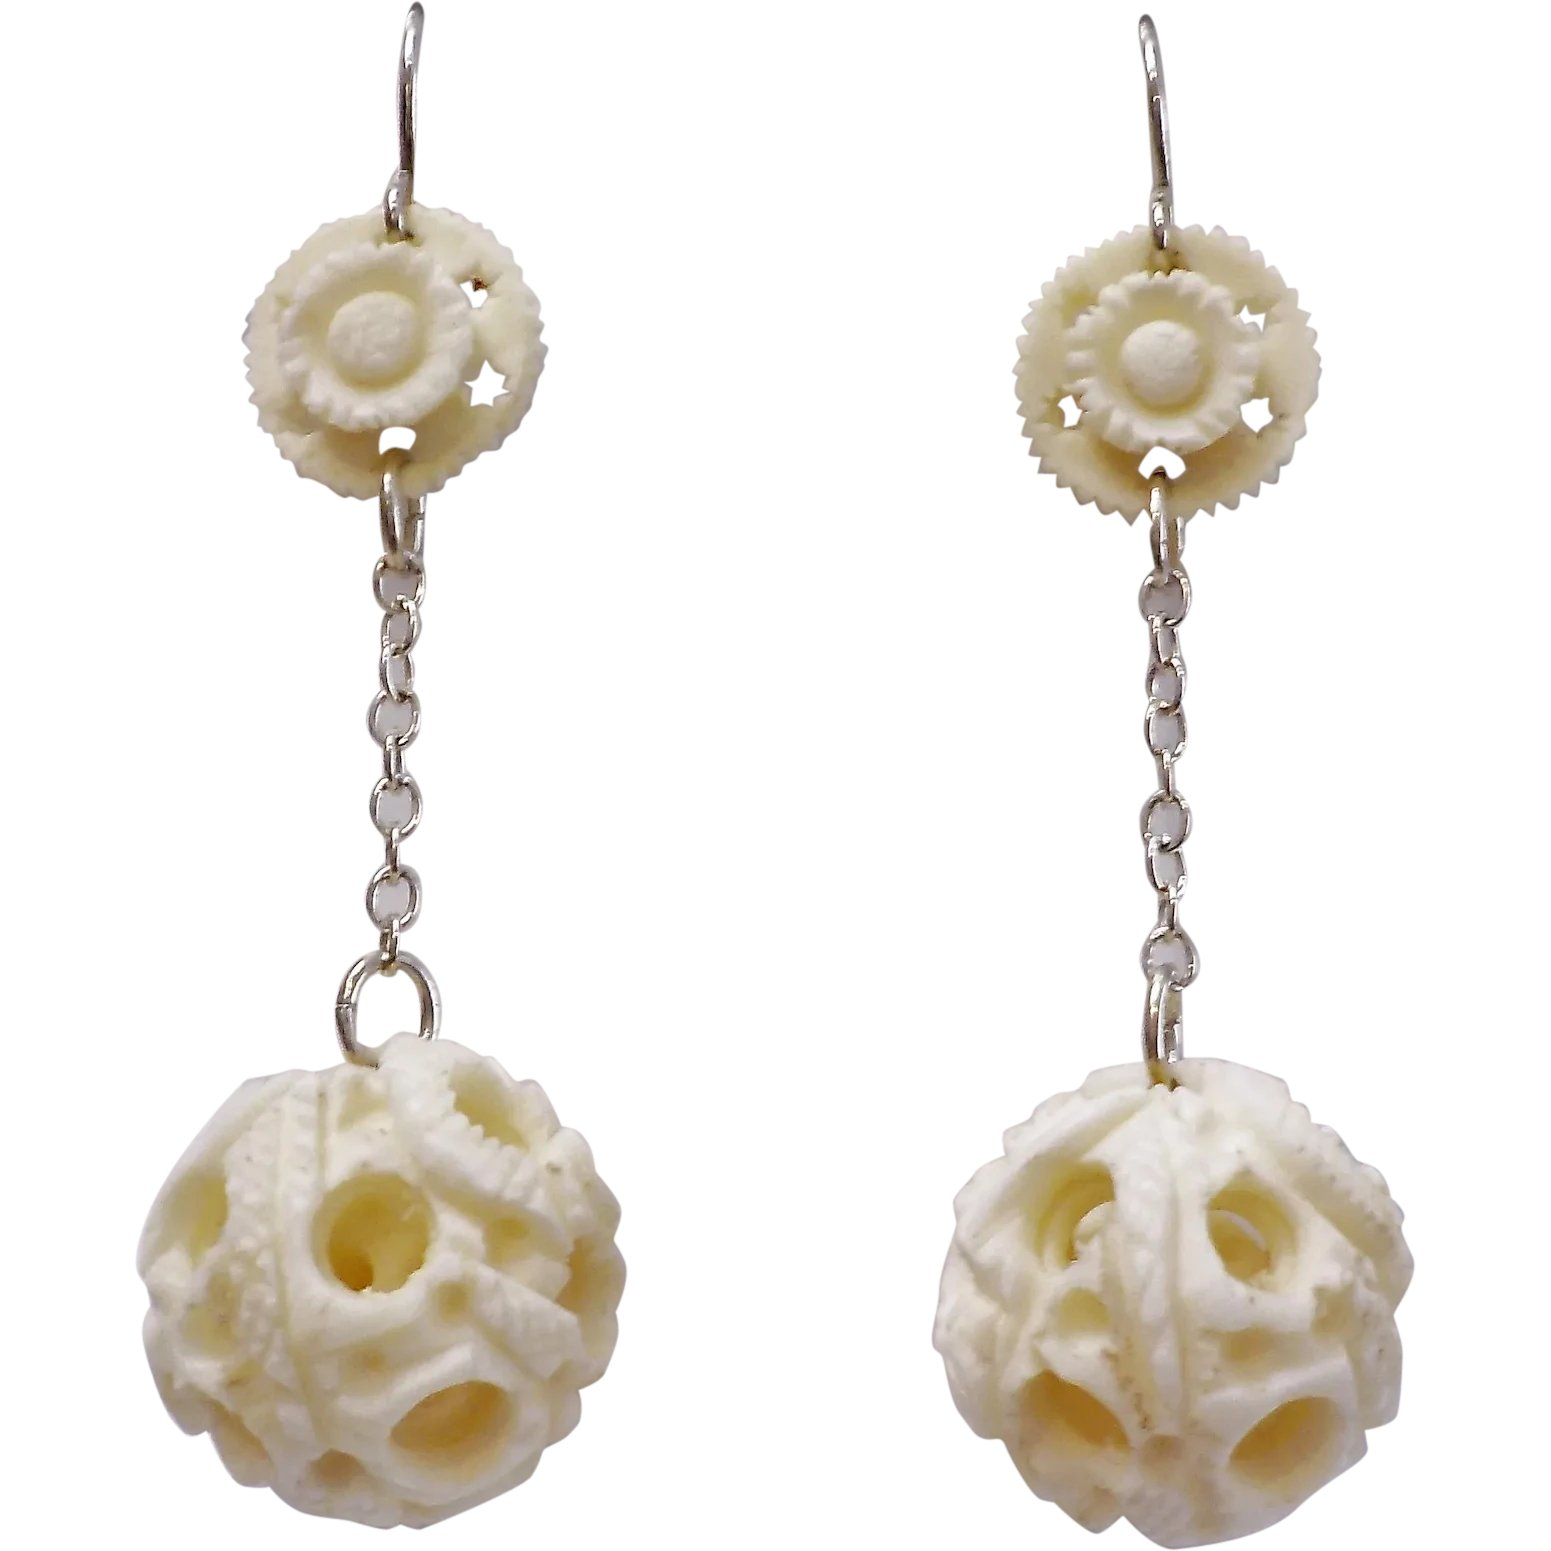 Vintage Carved Bone Puzzle Ball Sterling Silver Earrings Fine Finds Ruby Lane